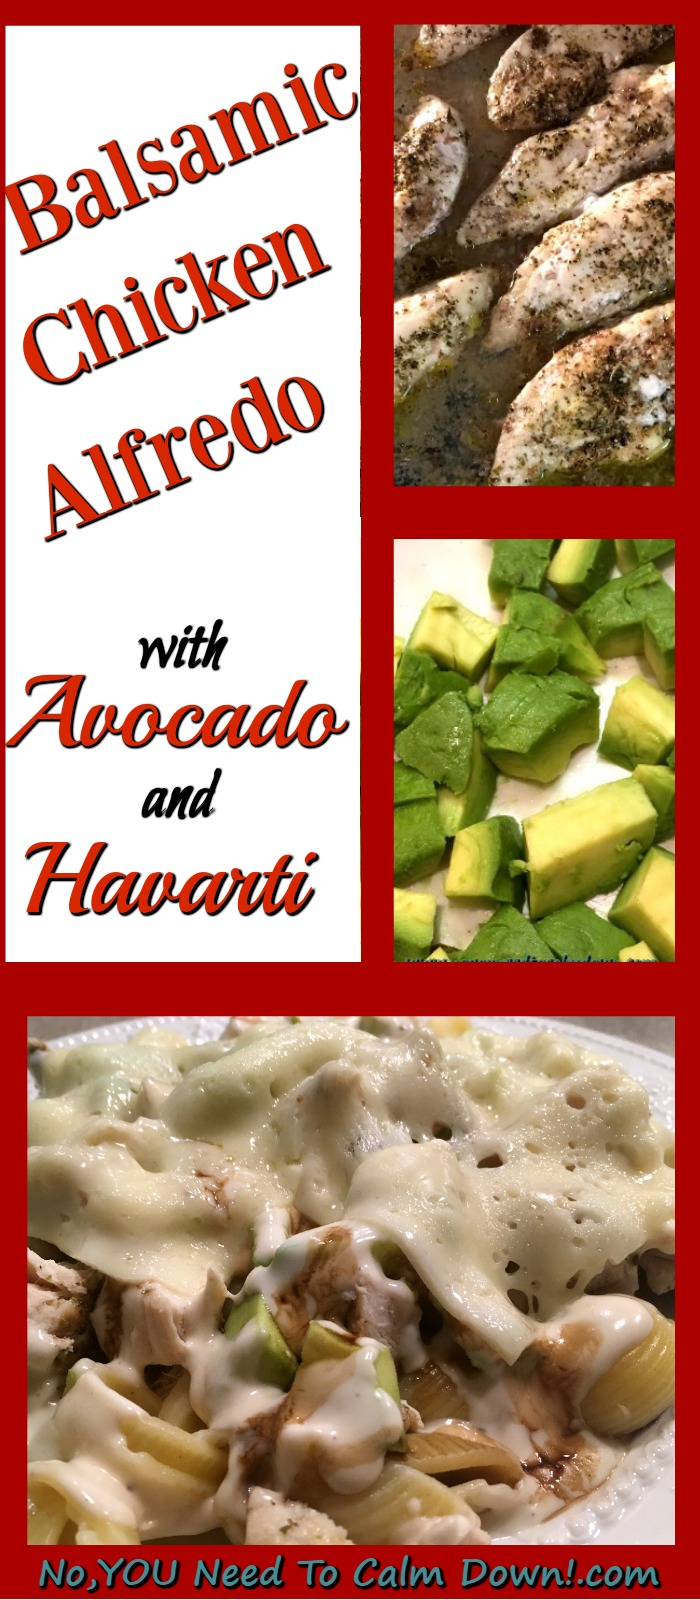 This balsamic chicken alfredo with avocado and havarti is delicious served with pasta or rice. It's easy to make and kid approved! #chickendinner #chickenalfredo #chickenpasta